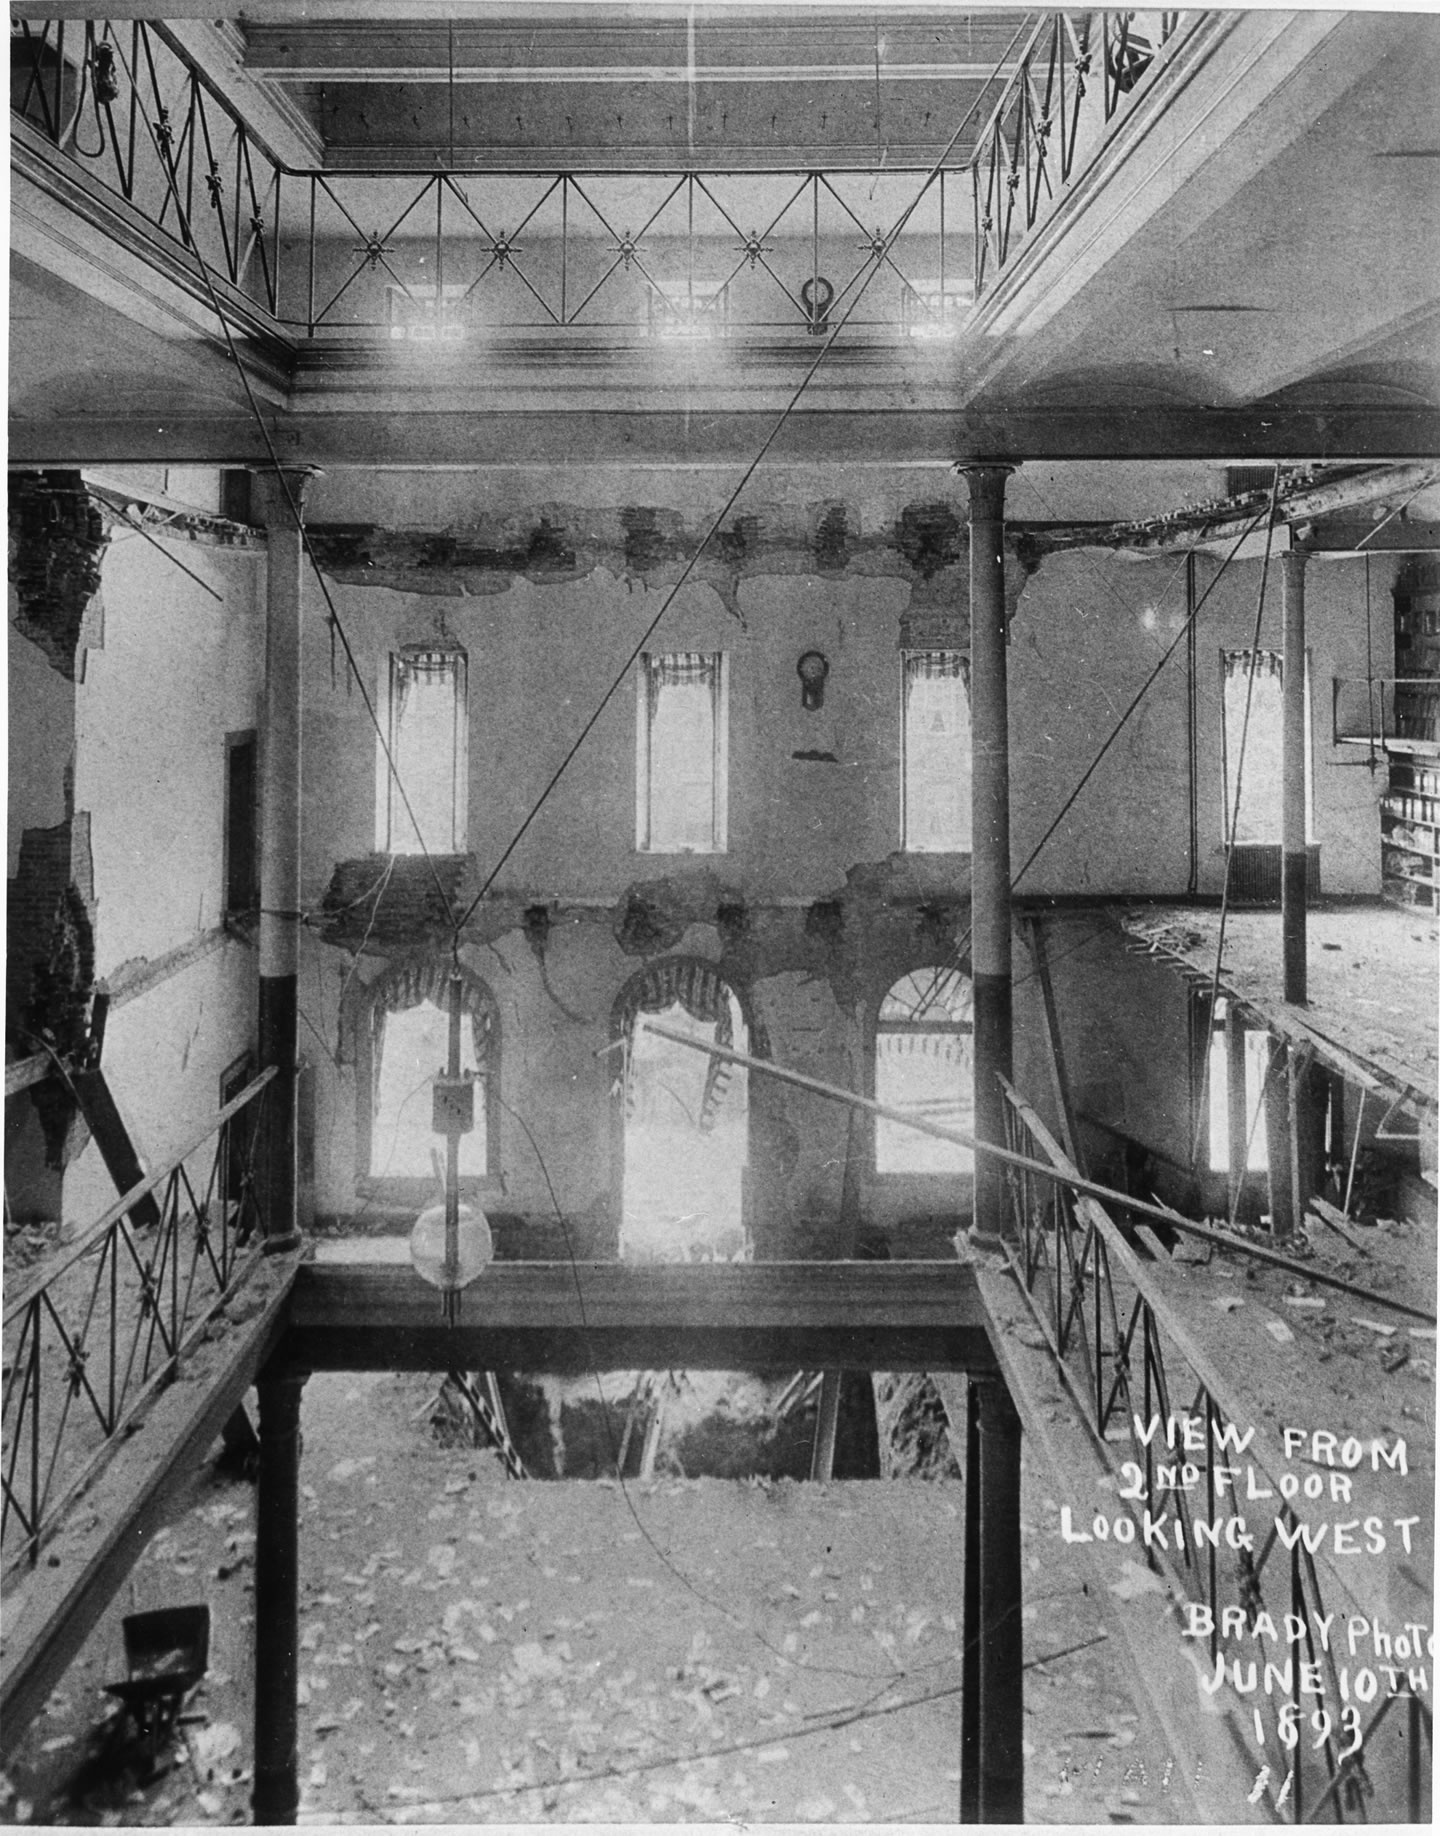 Black and white photo of a crumbled Ford's Theatre interior. Image shows the front brick facade standing with piles of rubble, wooden supports holding up walls. Image by Mathew Brady in 1893.